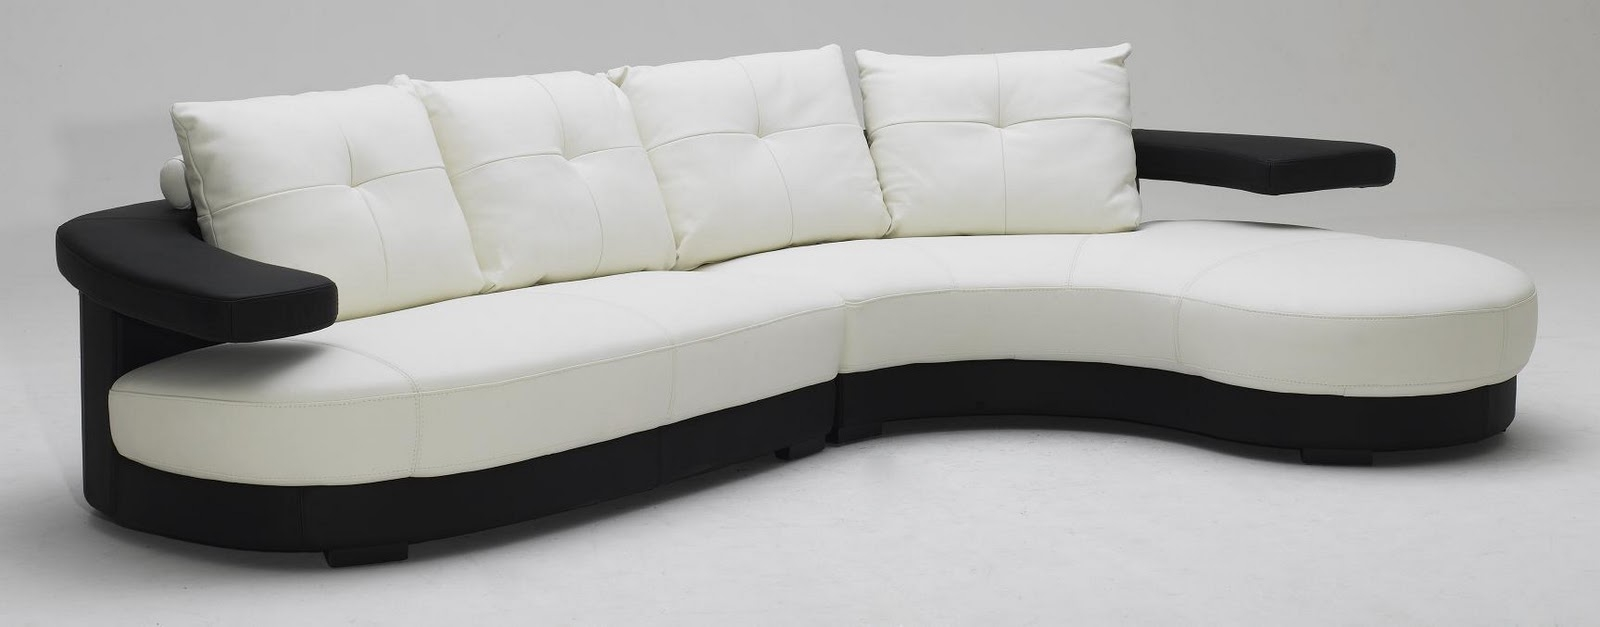 Sofa Modern Sofas And Chairs Chair Set Under 500 Walmart Leather With Regard To Contemporary Sofas And Chairs (Image 14 of 15)